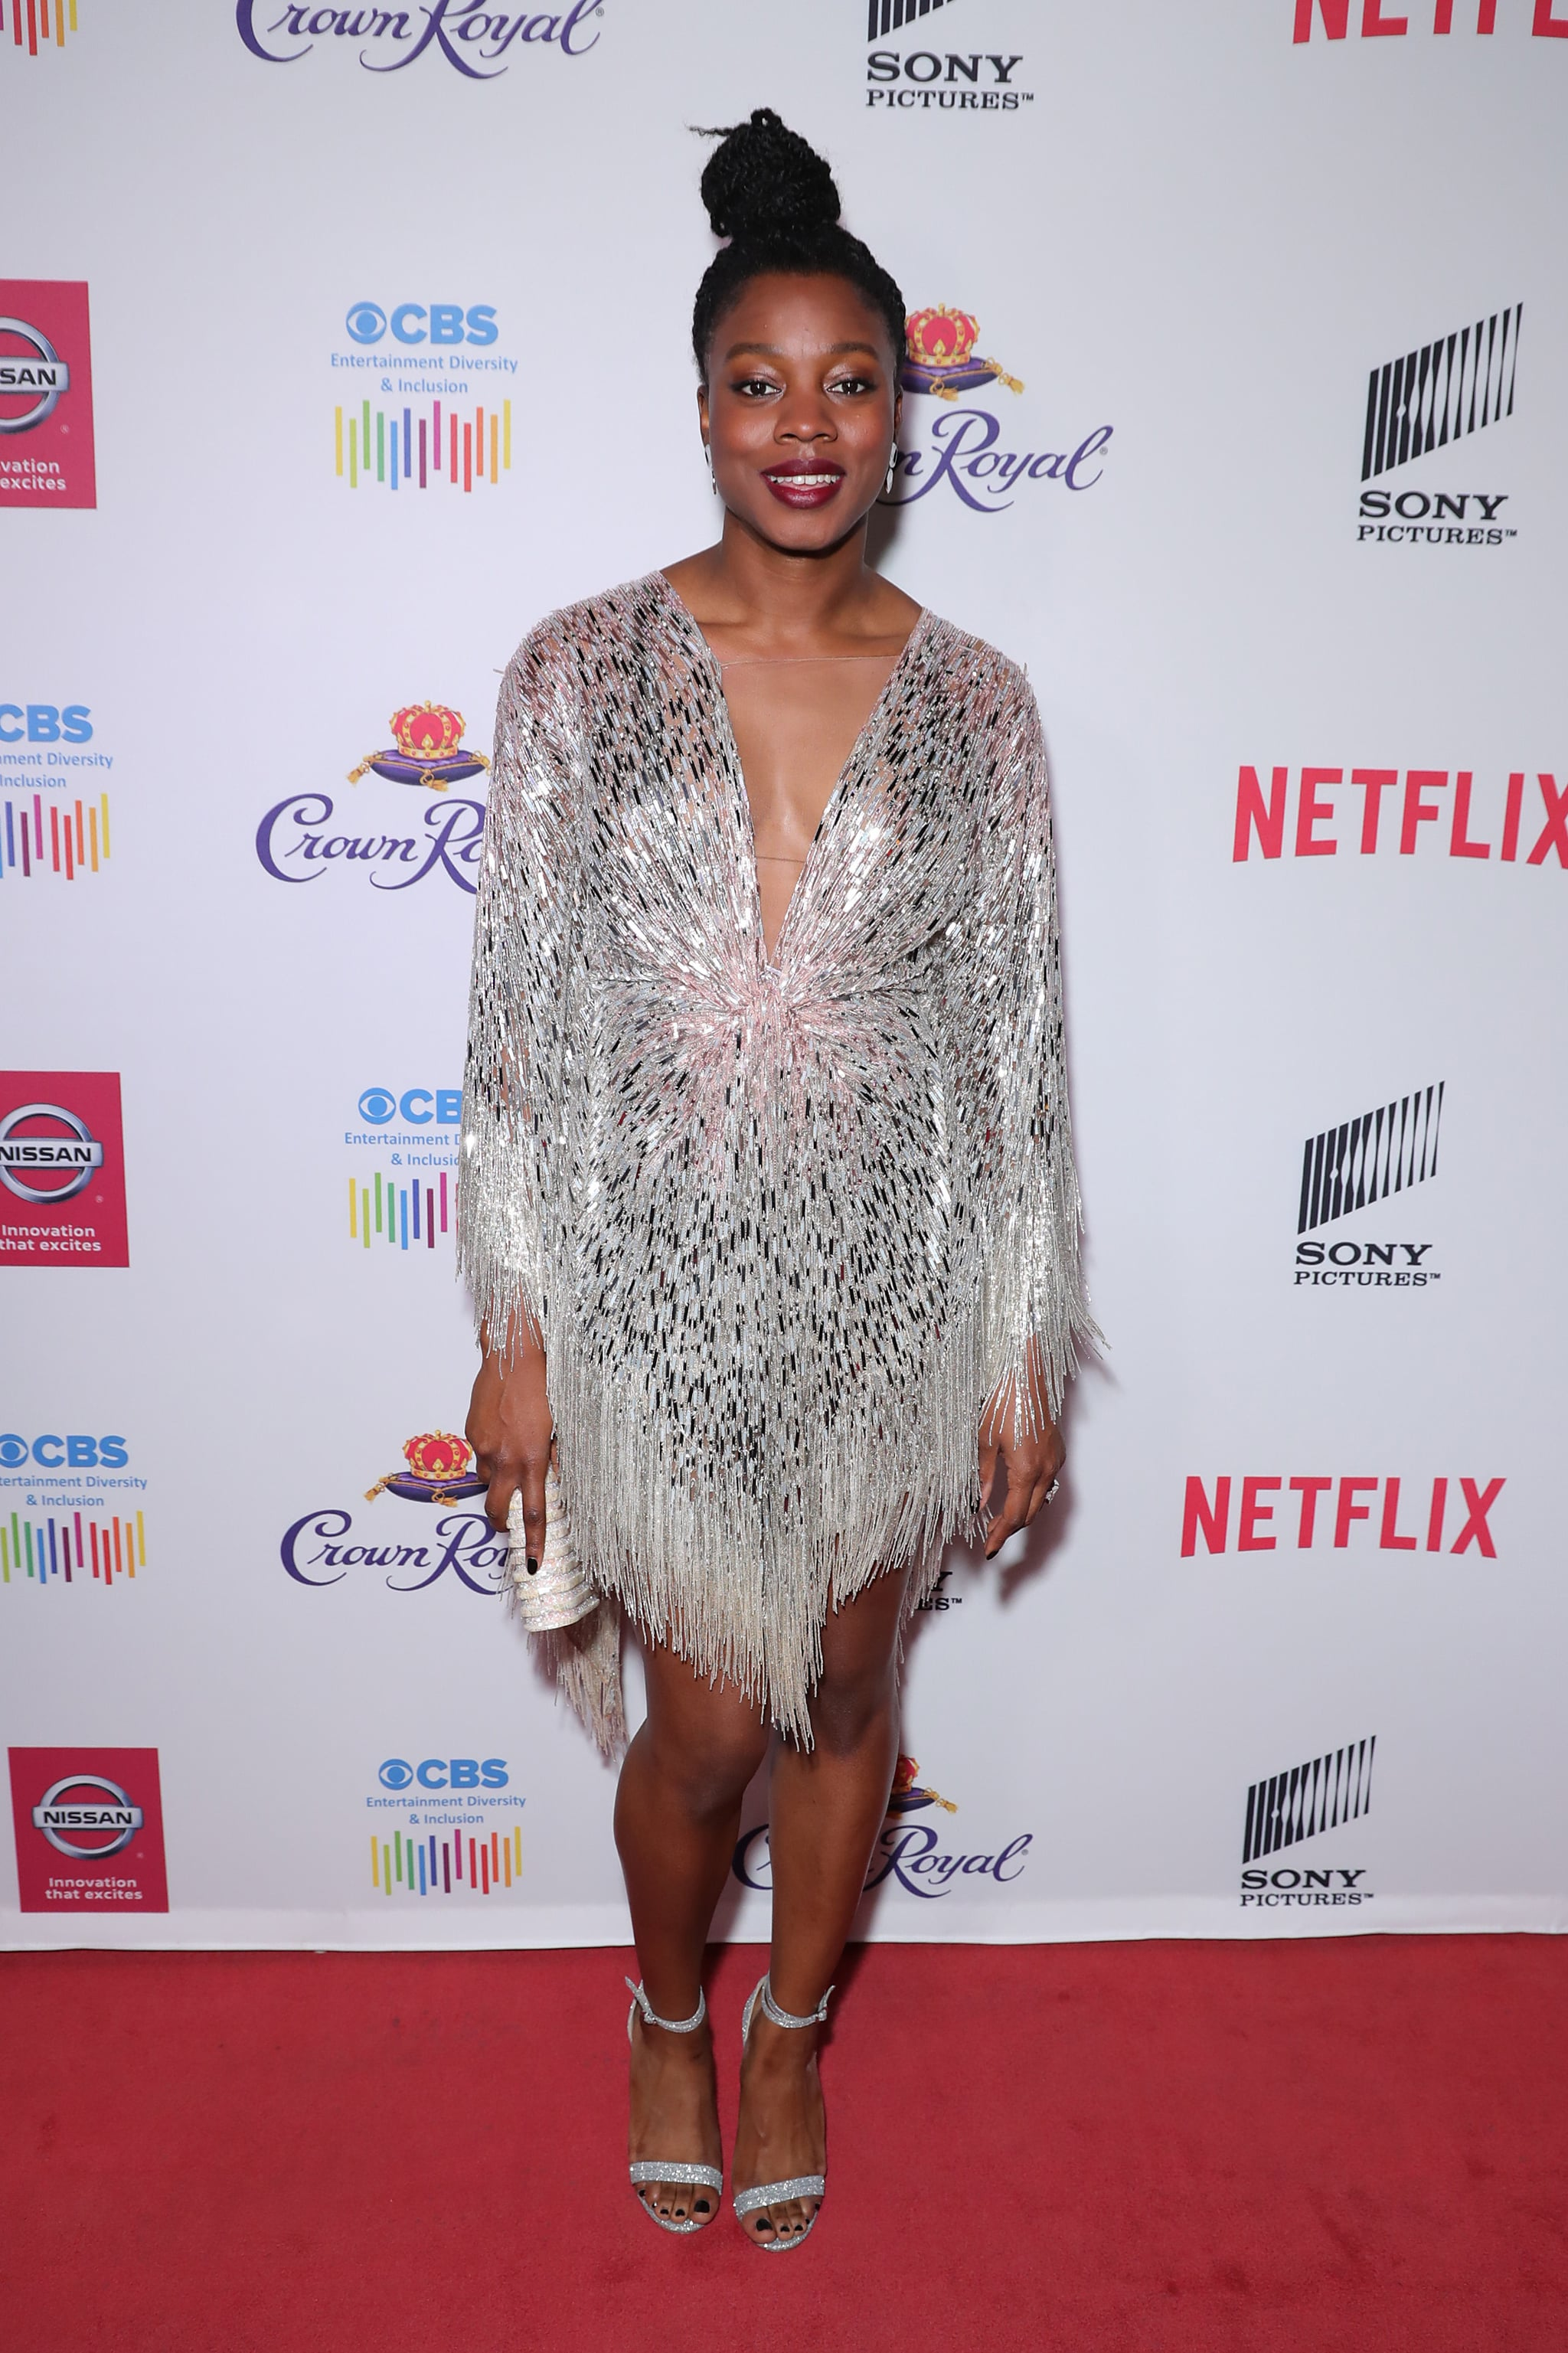 HOLLYWOOD, CALIFORNIA - JANUARY 22: Nia DaCosta attends The African American Film Critics Association's 11th Annual AAFCA Awards at Taglyan Cultural Complex on January 22, 2020 in Hollywood, California. (Photo by Leon Bennett/WireImage)